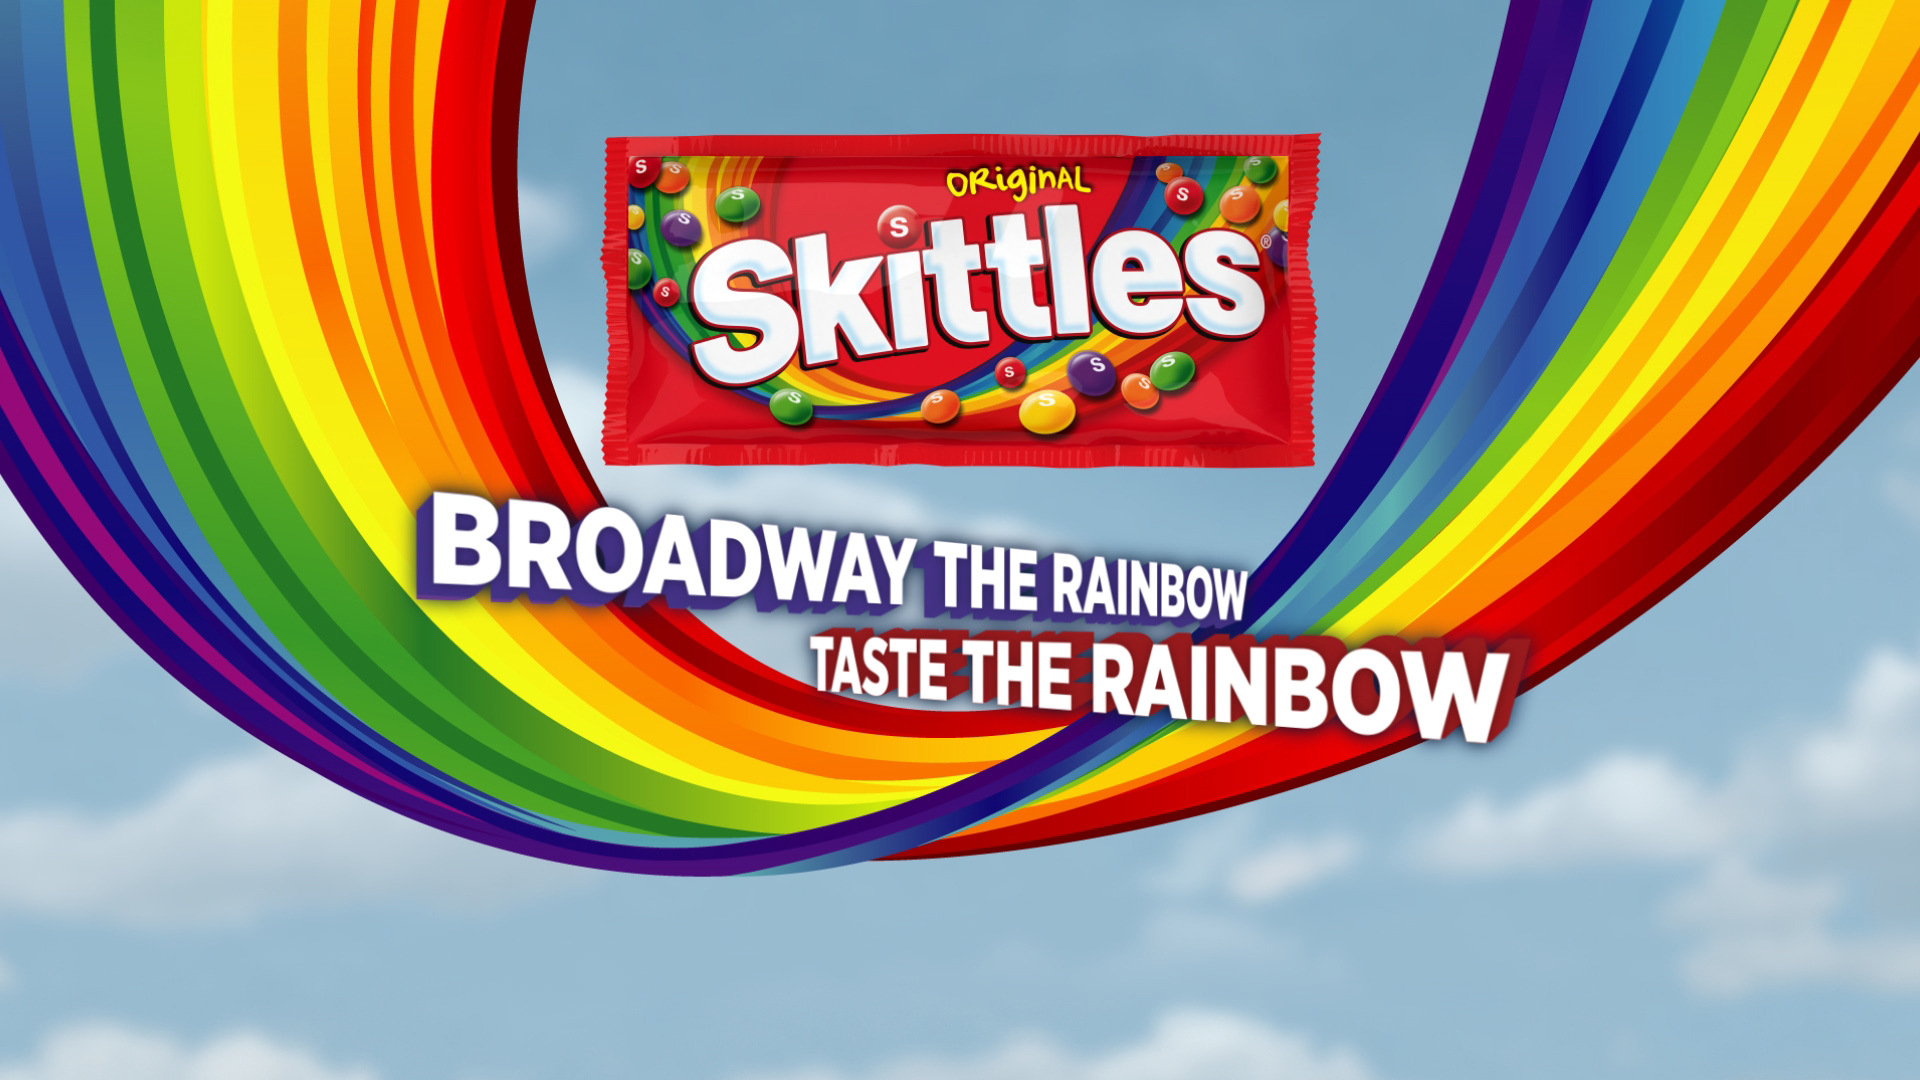 Michael C. Hall's Super Bowl 2019 Skittles Commercial to Be Performed as Live Broadway Musical